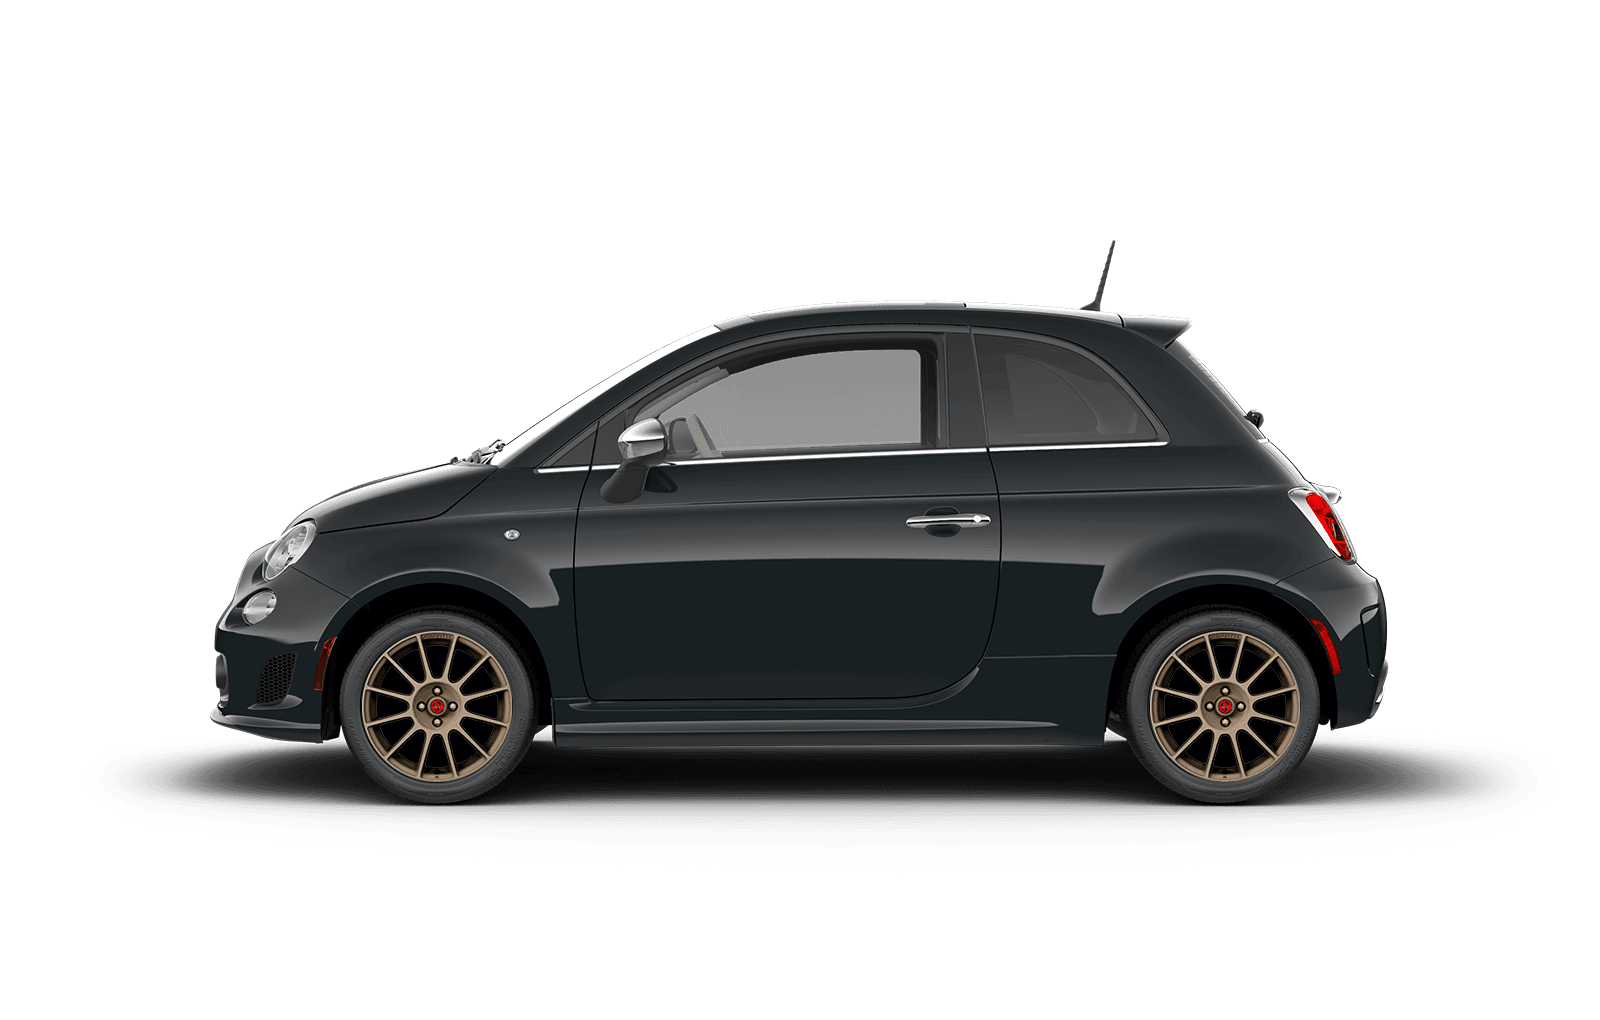 17-Inch Hyper Bronze Forged Aluminum Wheels  Available on 2018 FIAT 500 Abarth